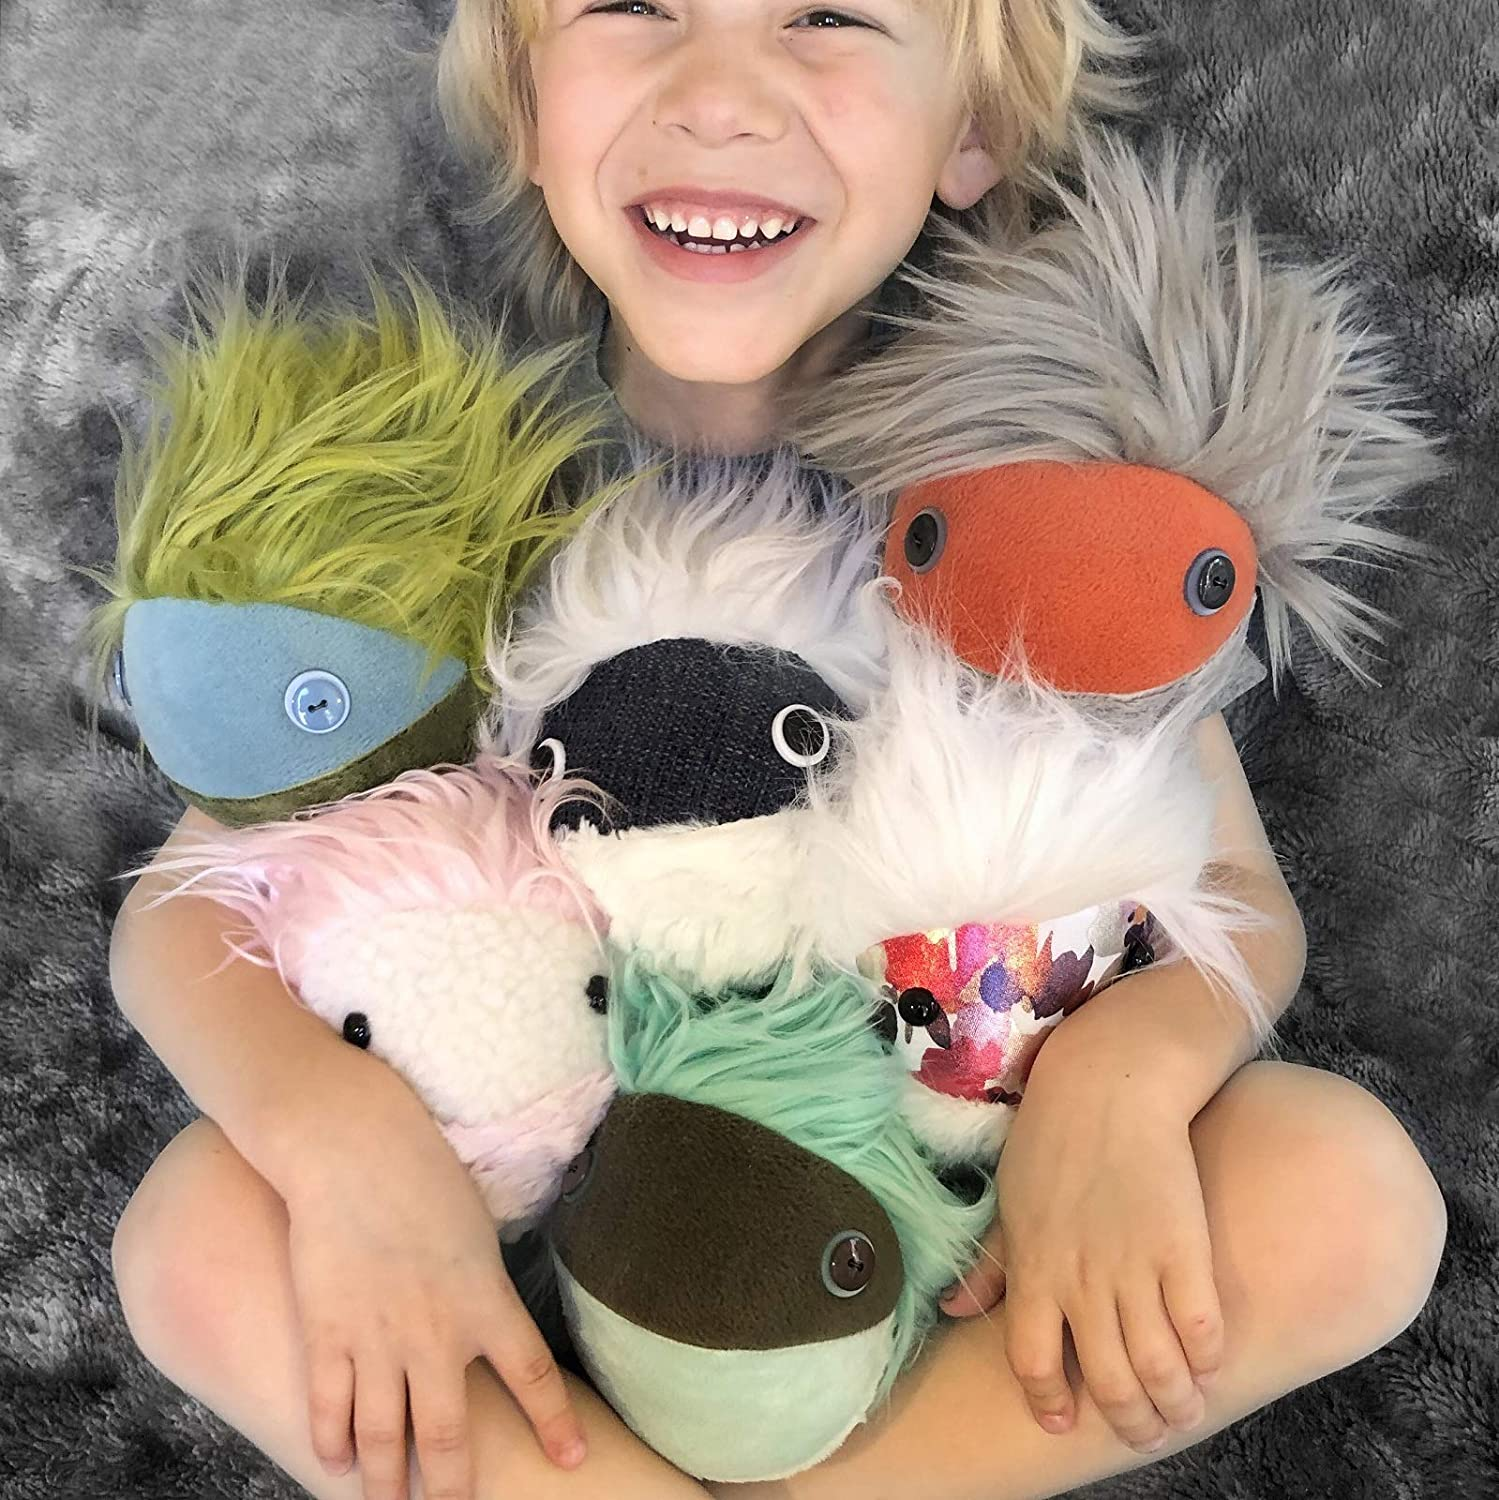 Mimbleball |The Cuddly Comforting Companion Plush Therapy Ball for Young and Old